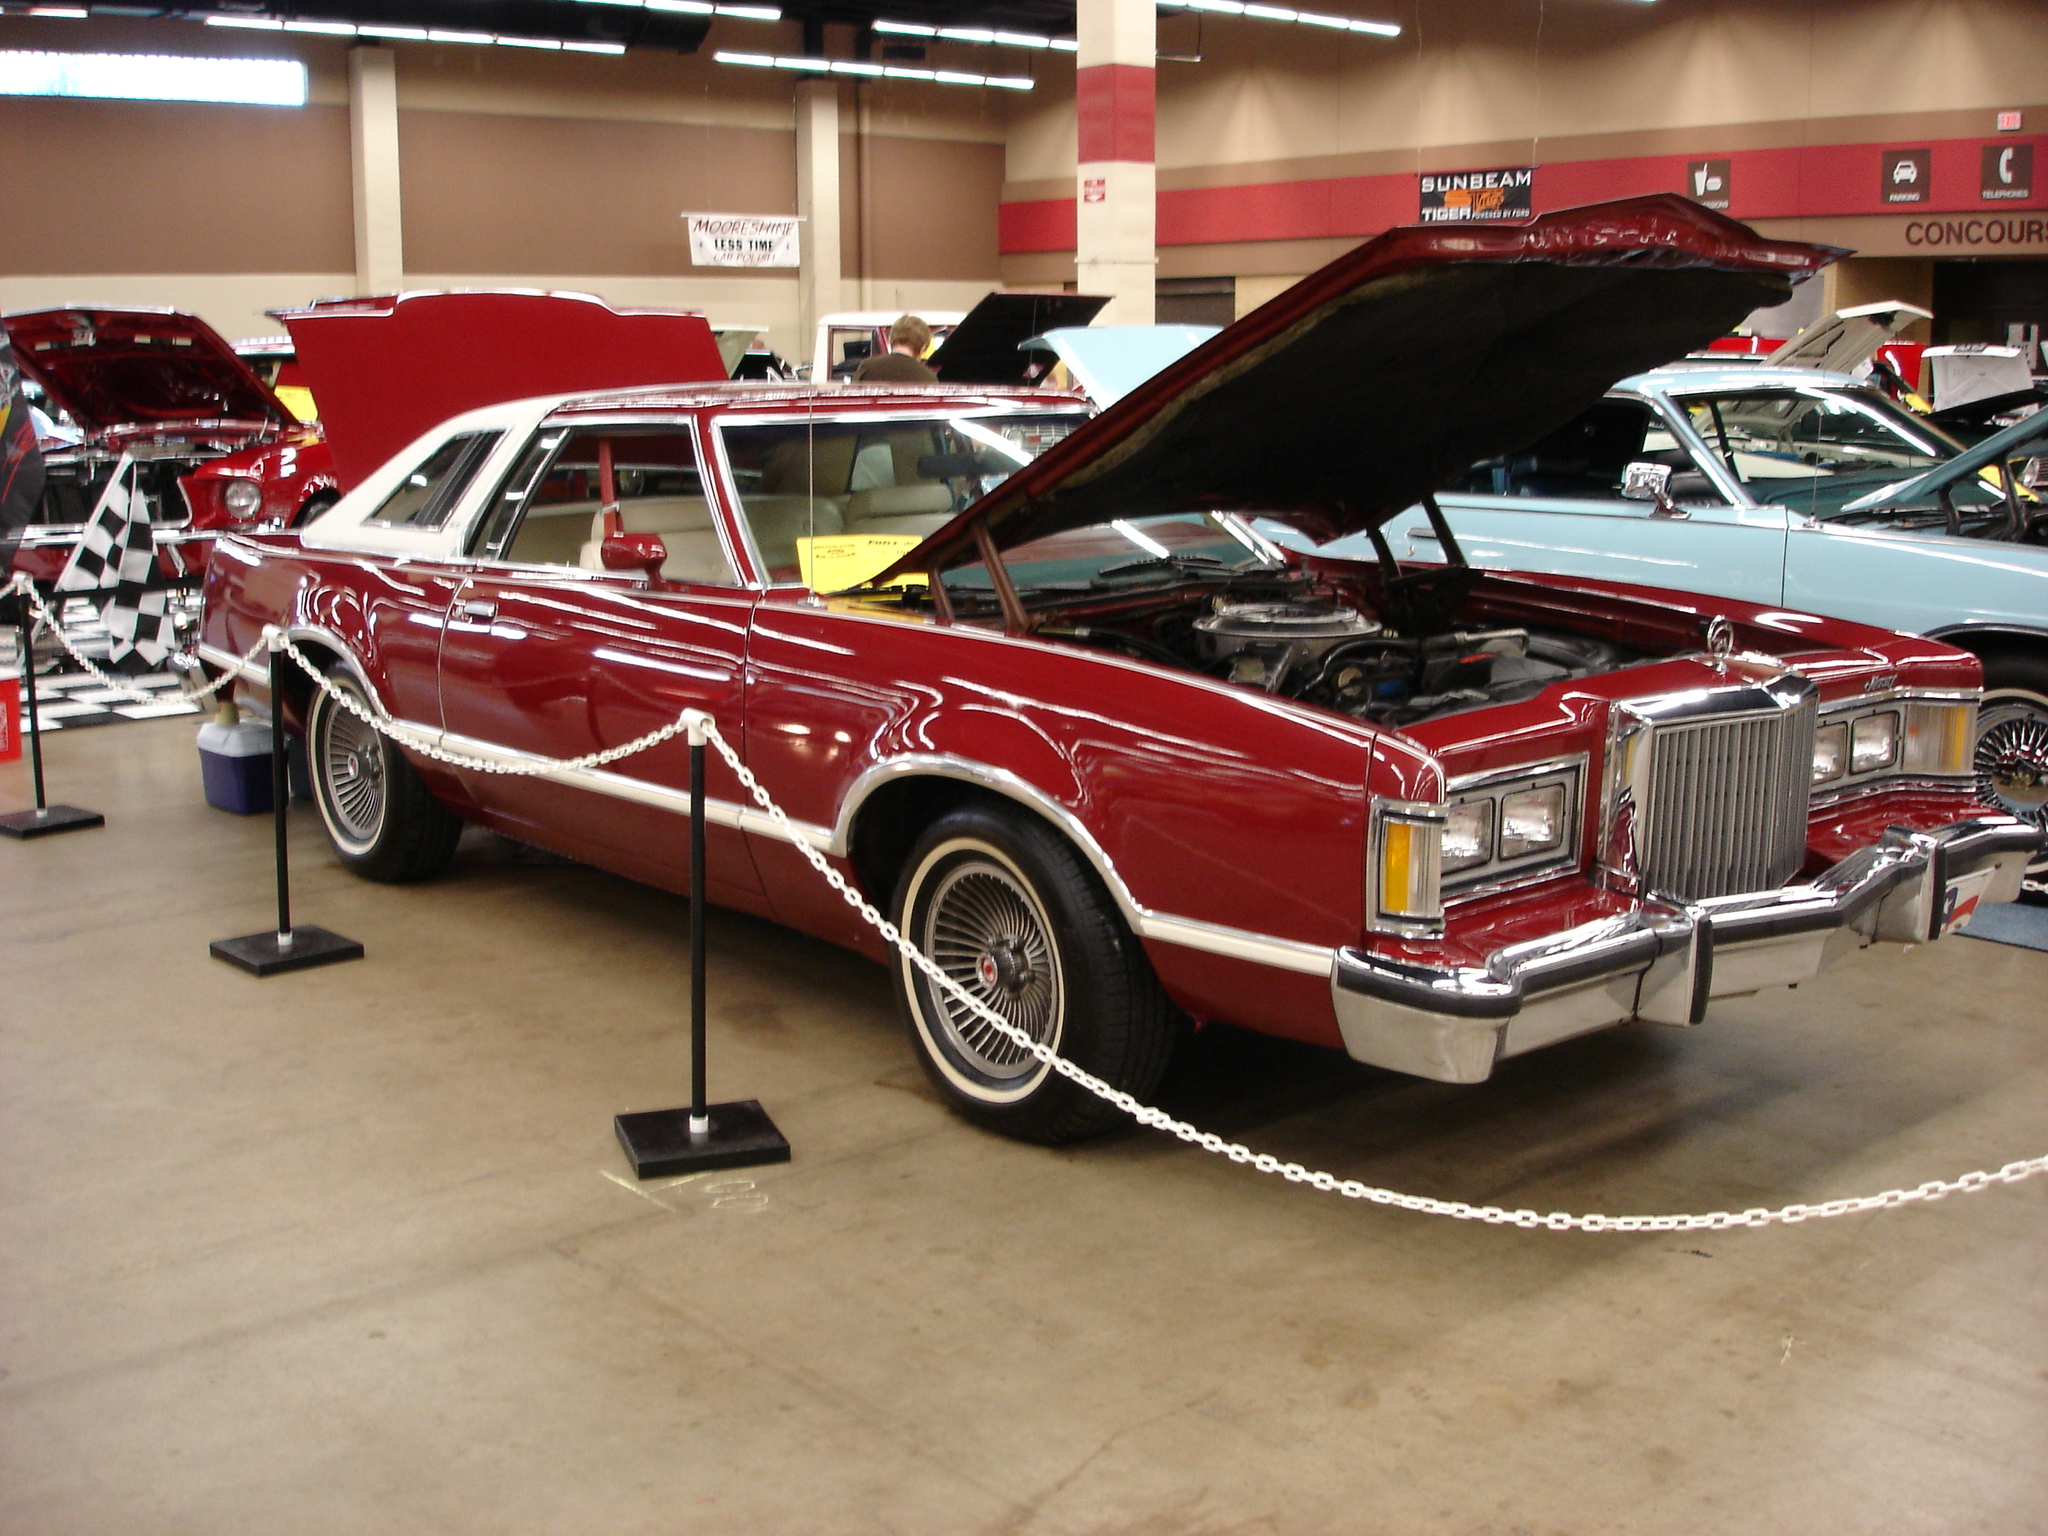 Car Lot Classic 1980 Mercury Cougar XR7  That Very Common